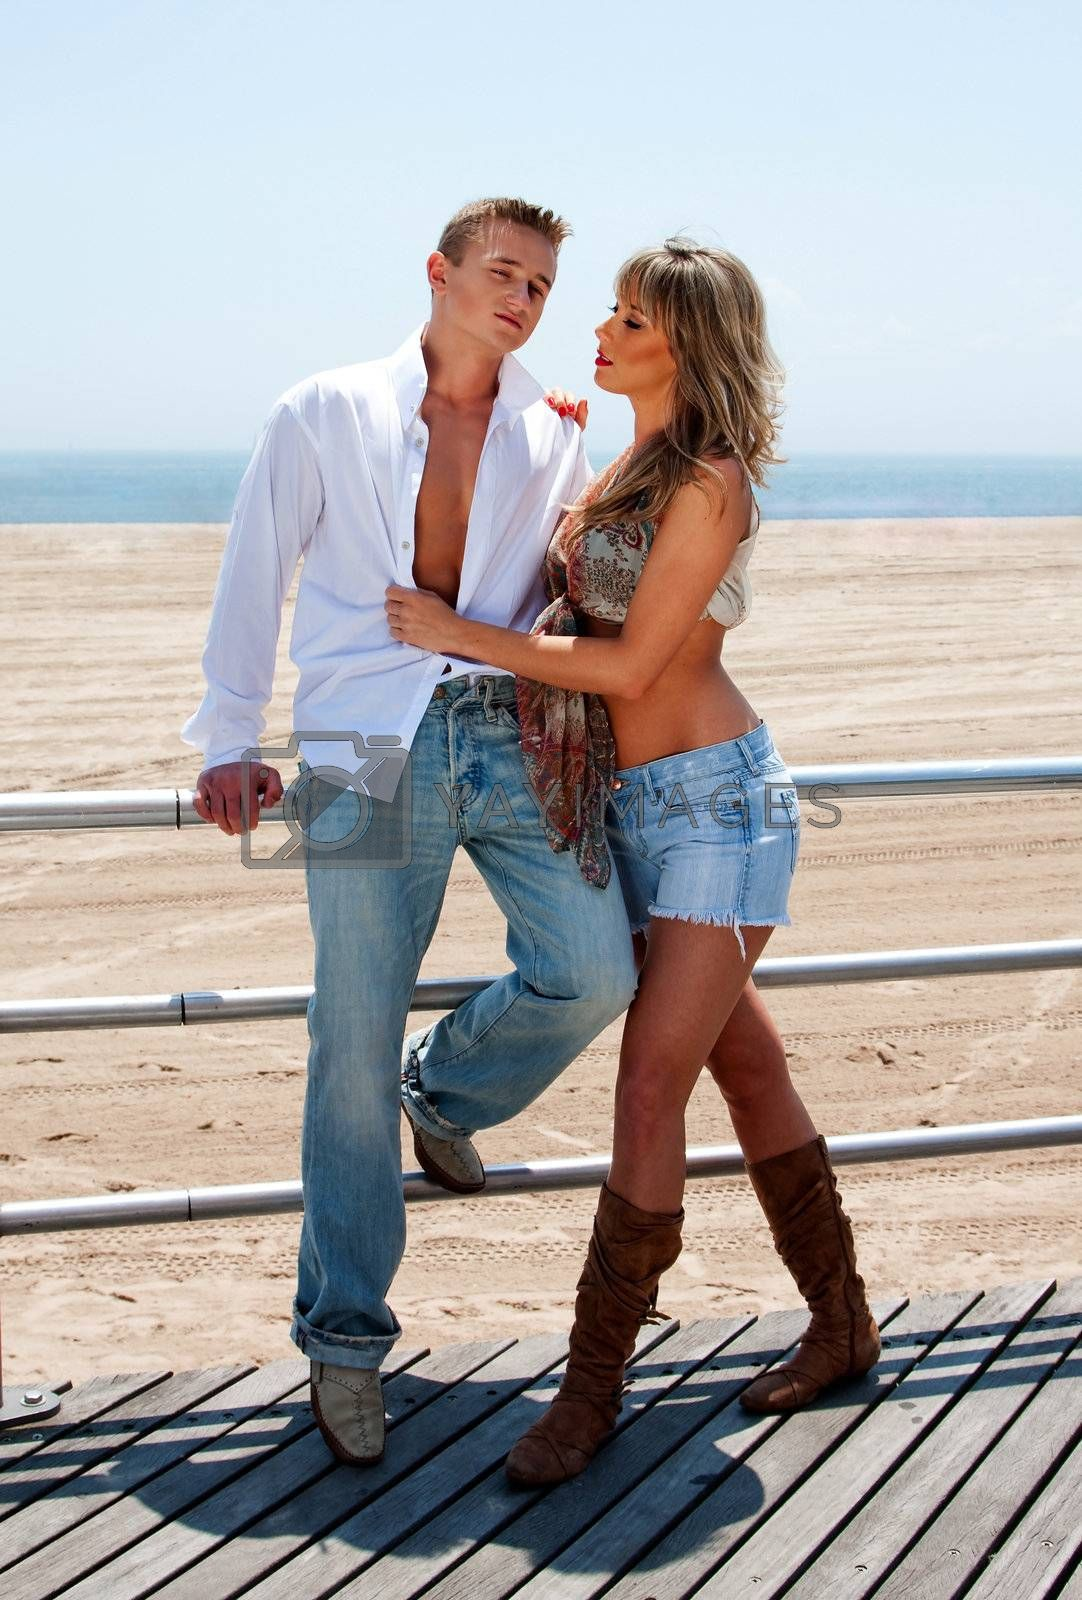 Young sexy couple, man and woman, next to railing on the boardwalk at the beach standing romantically together